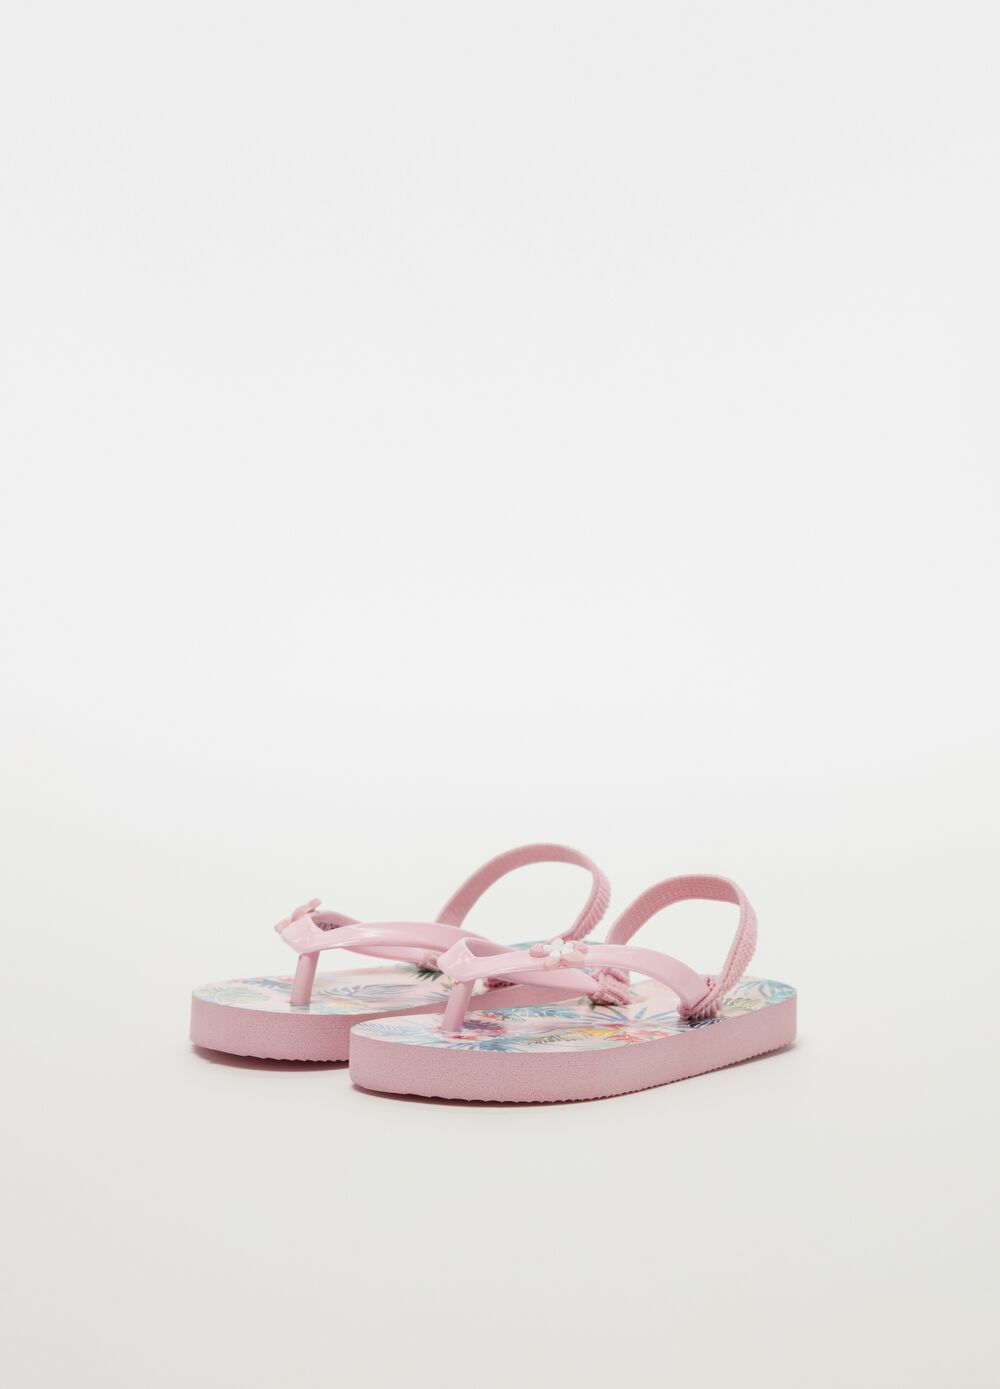 Thong sandals with flower and foliage pattern